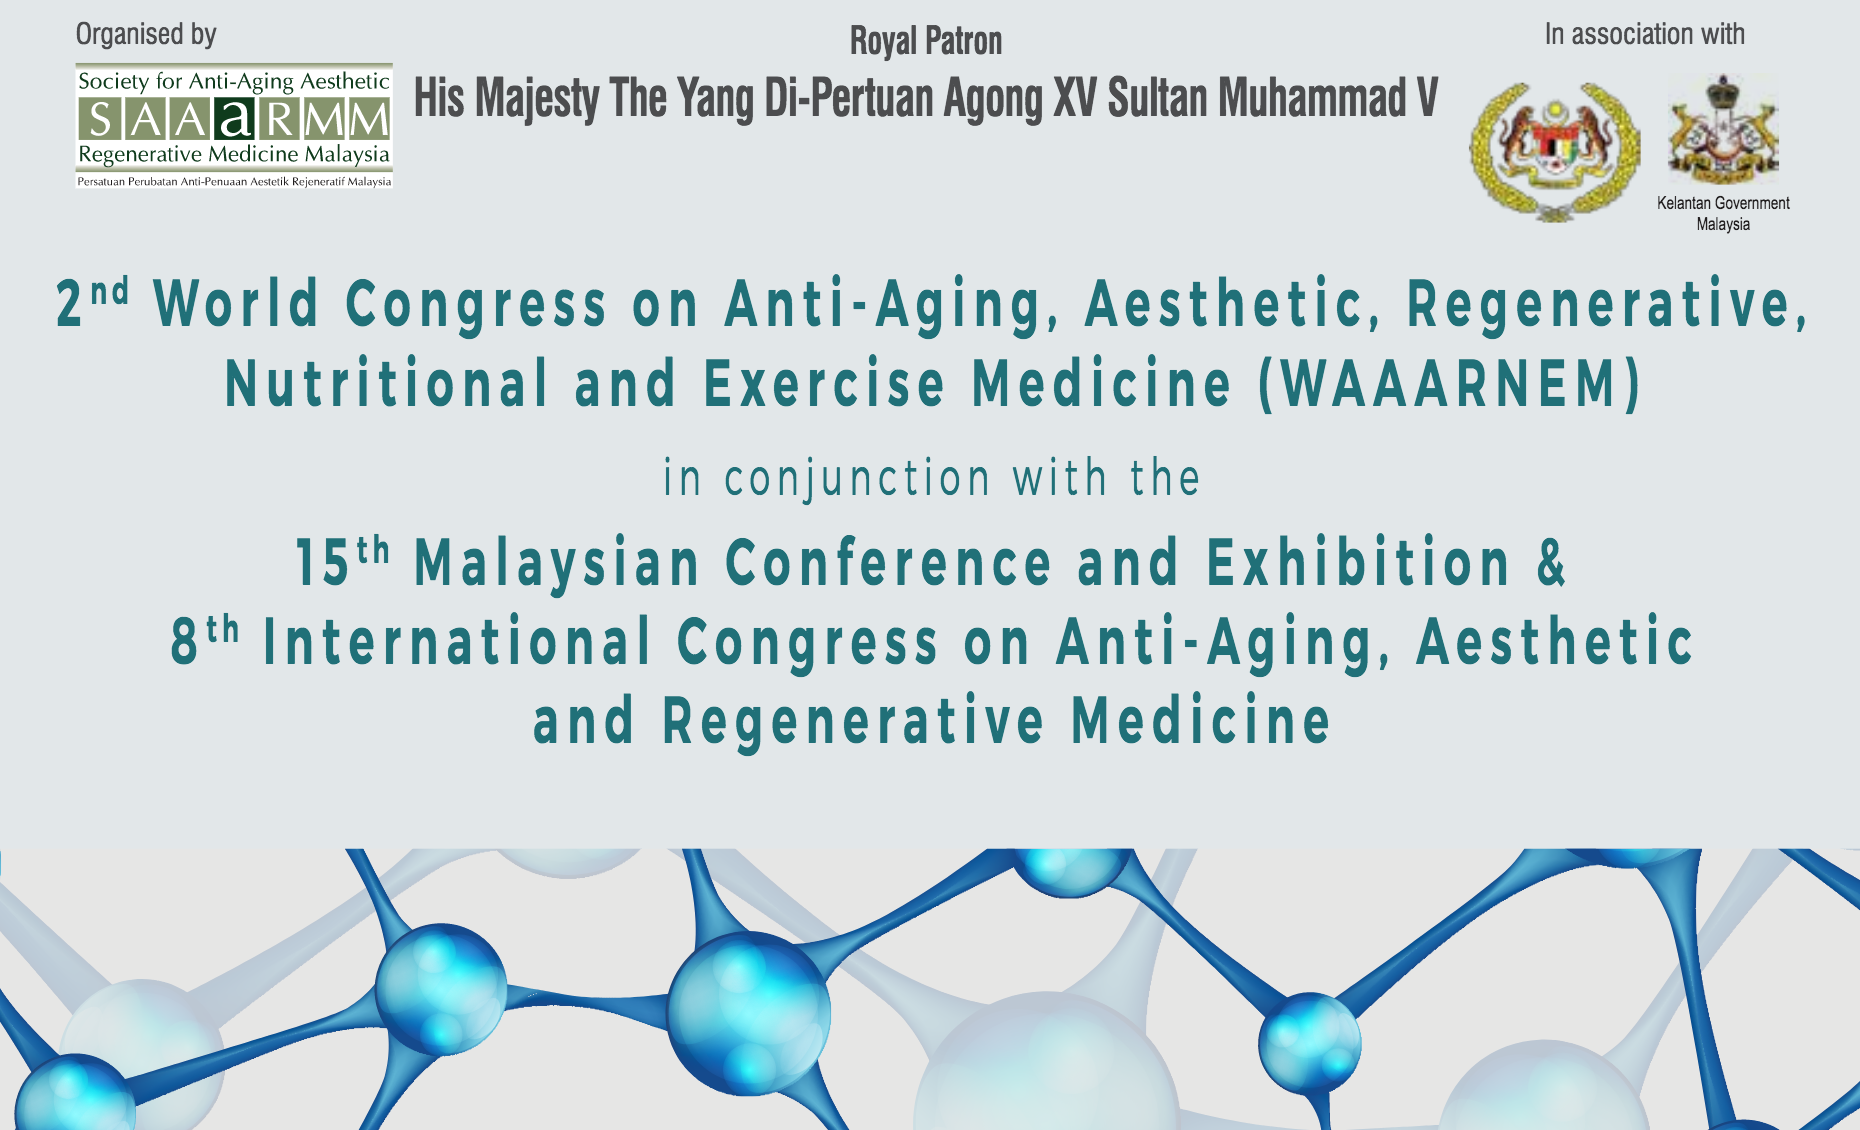 Exhibit and Speaking @ the 2nd World Congress on Anti-Aging, Aesthetic,  Regenerative, Nutritional and Exercise Medicine (WAAARNEM)